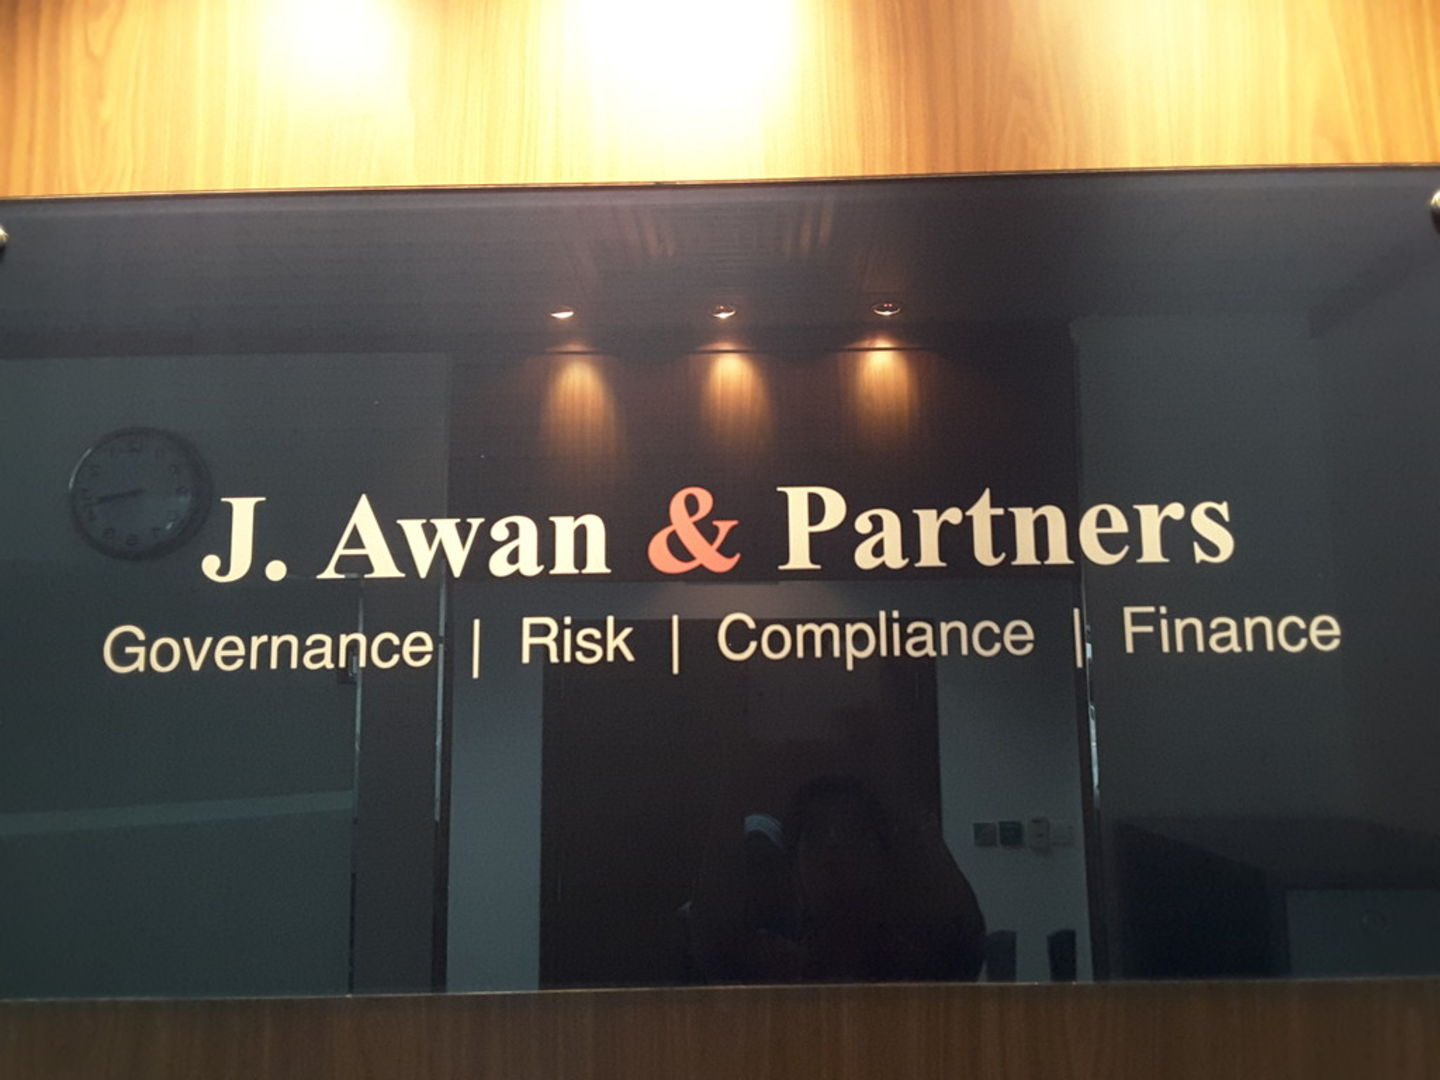 HiDubai-business-j-awan-partners-b2b-services-business-consultation-services-dubai-international-financial-centre-zaabeel-2-dubai-2